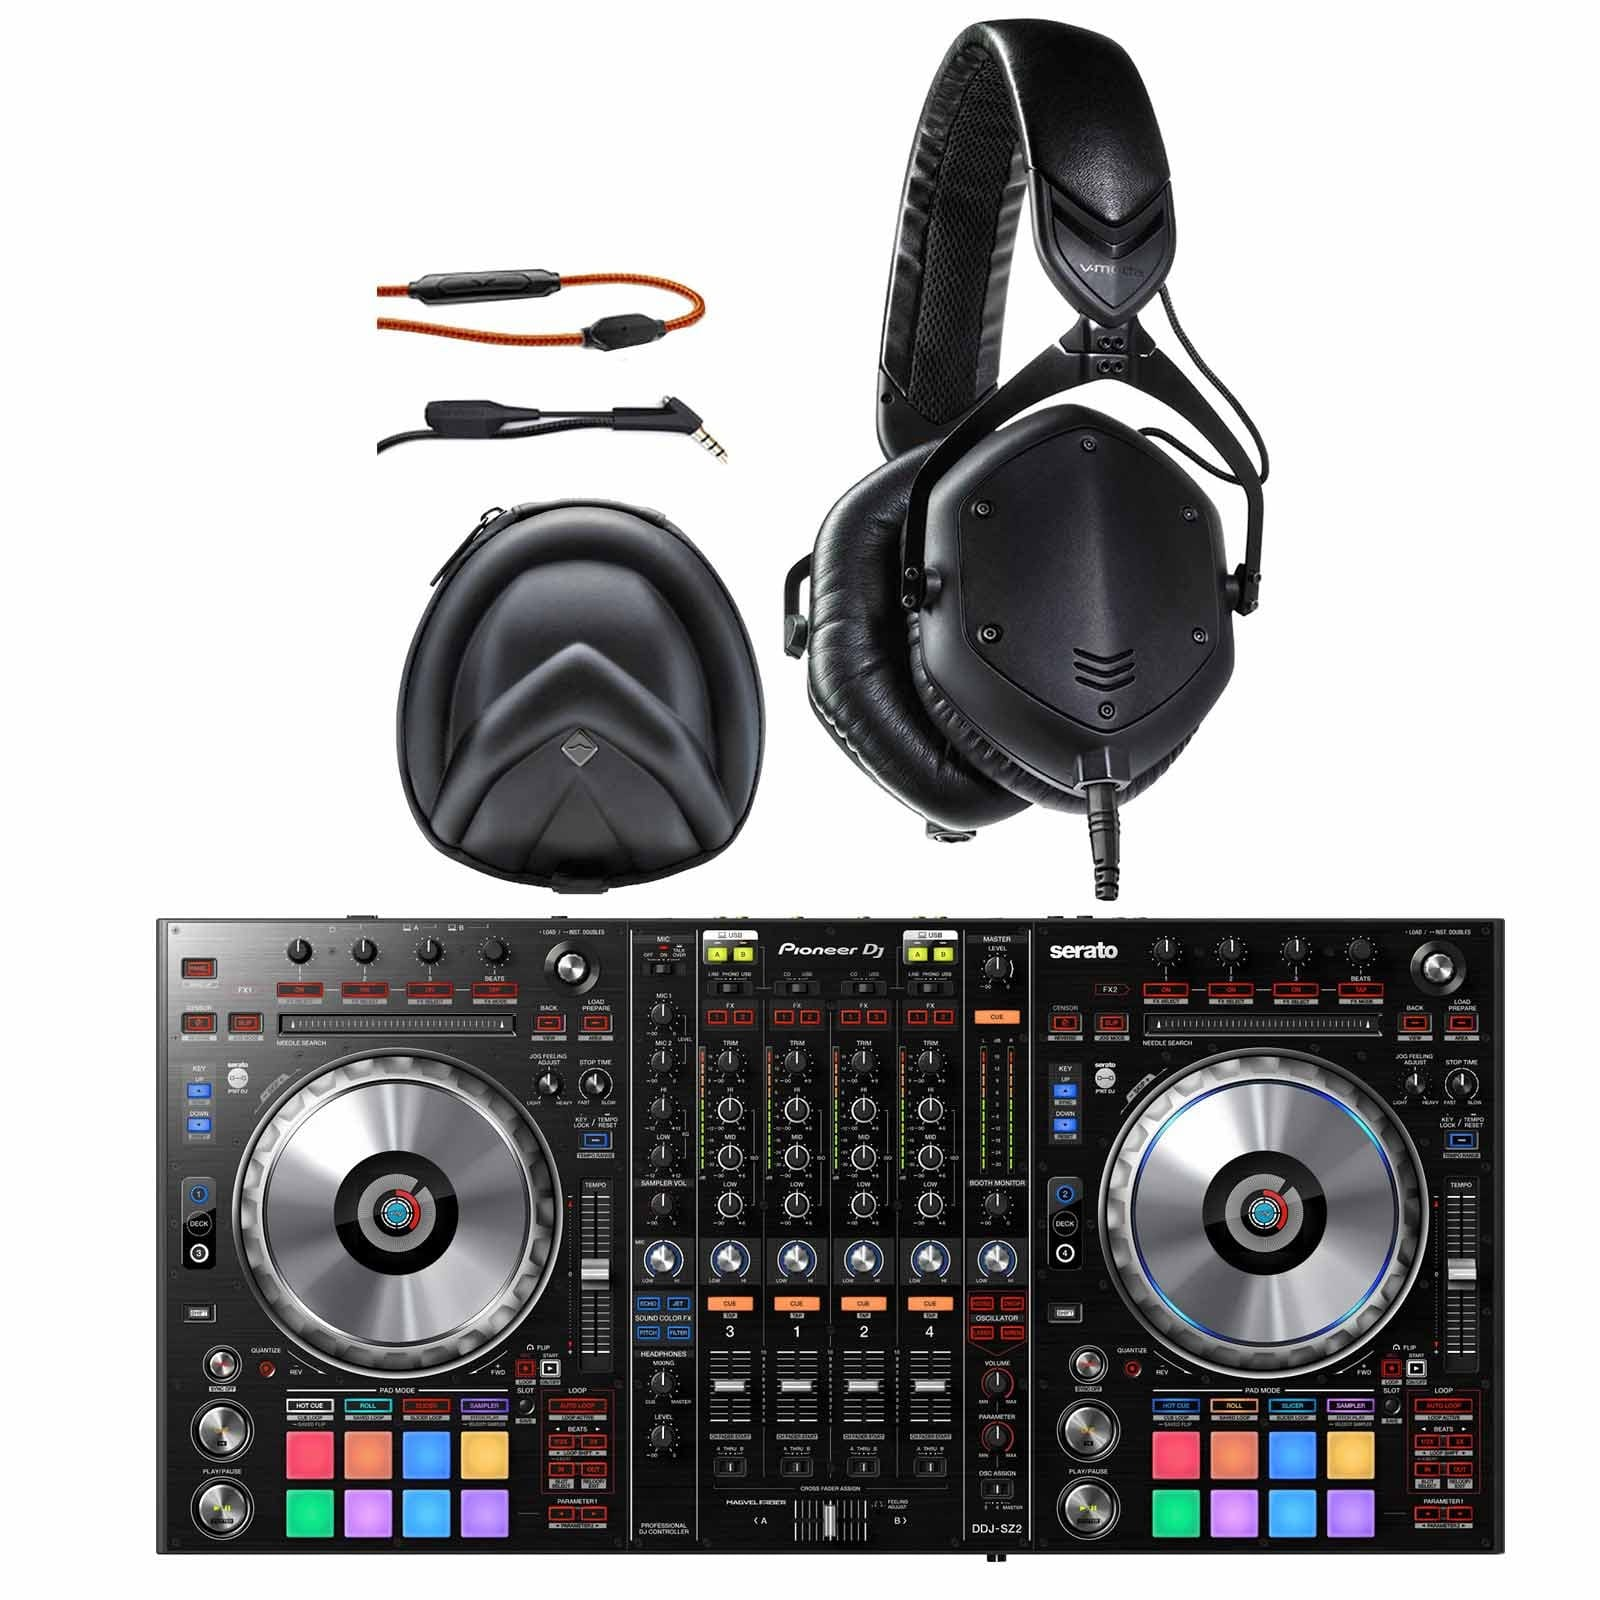 pioneer-ddj-sz2-flagship-4-channel-controller-for-serato-dj-packaged-with-v-moda-.jpg